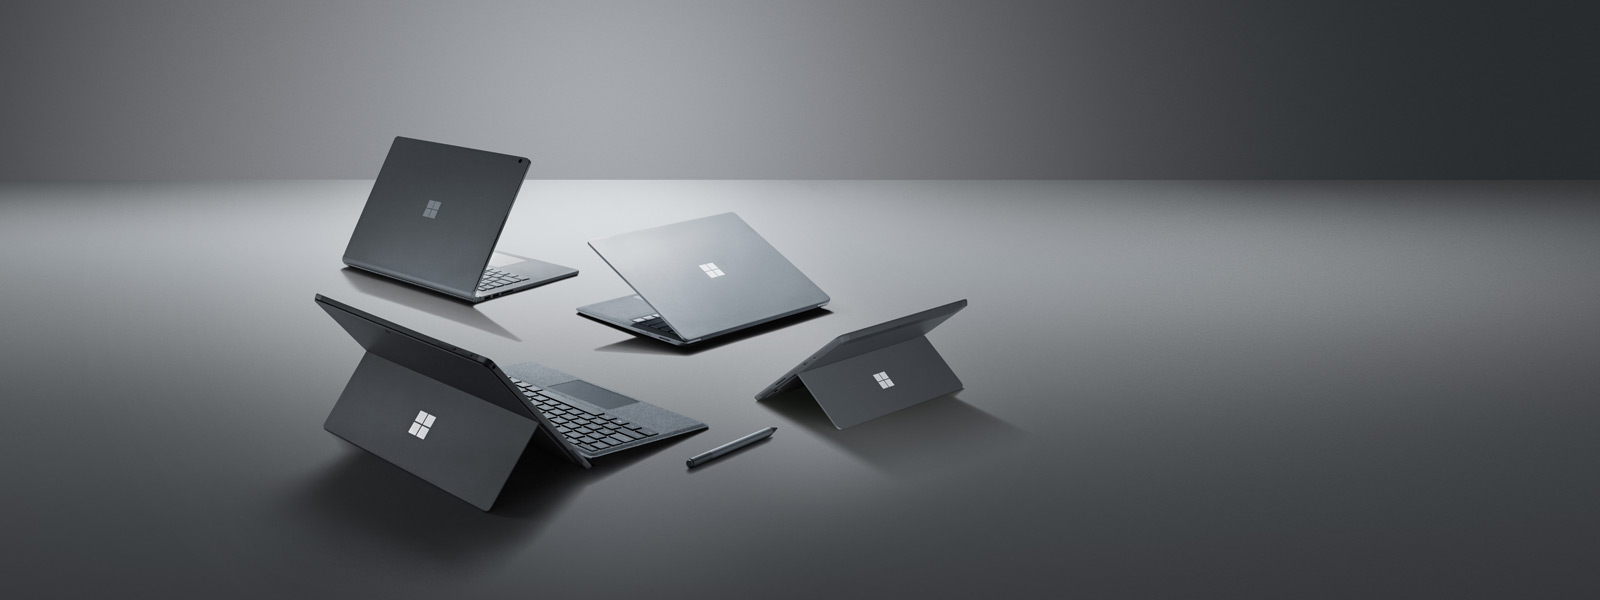 Surface Go, Surface Book 2, Platinum Surface Pro 6, Platinum Surface Laptop 2 and Surface Pen